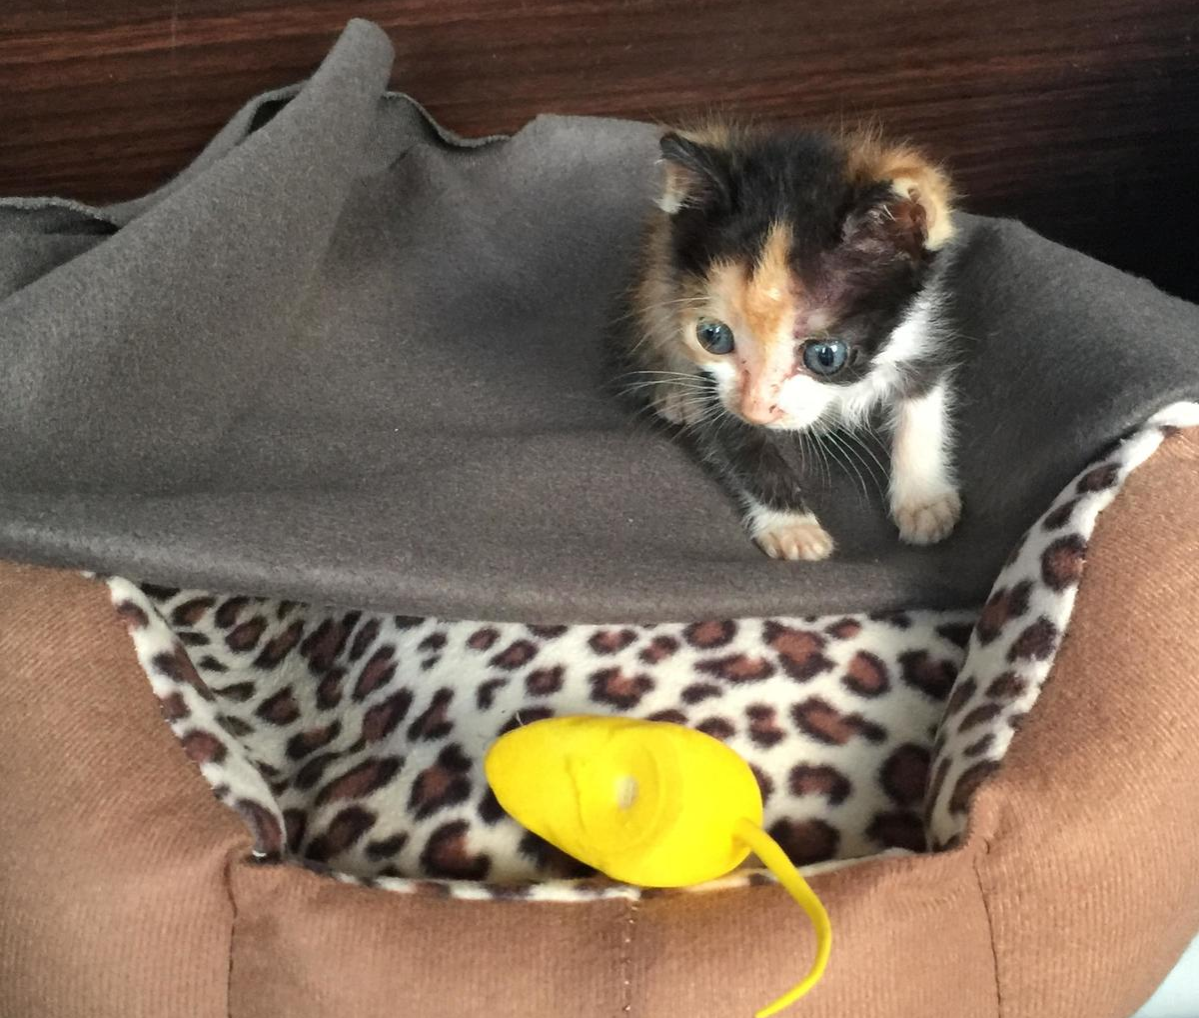 Sansa calico runt in her bed